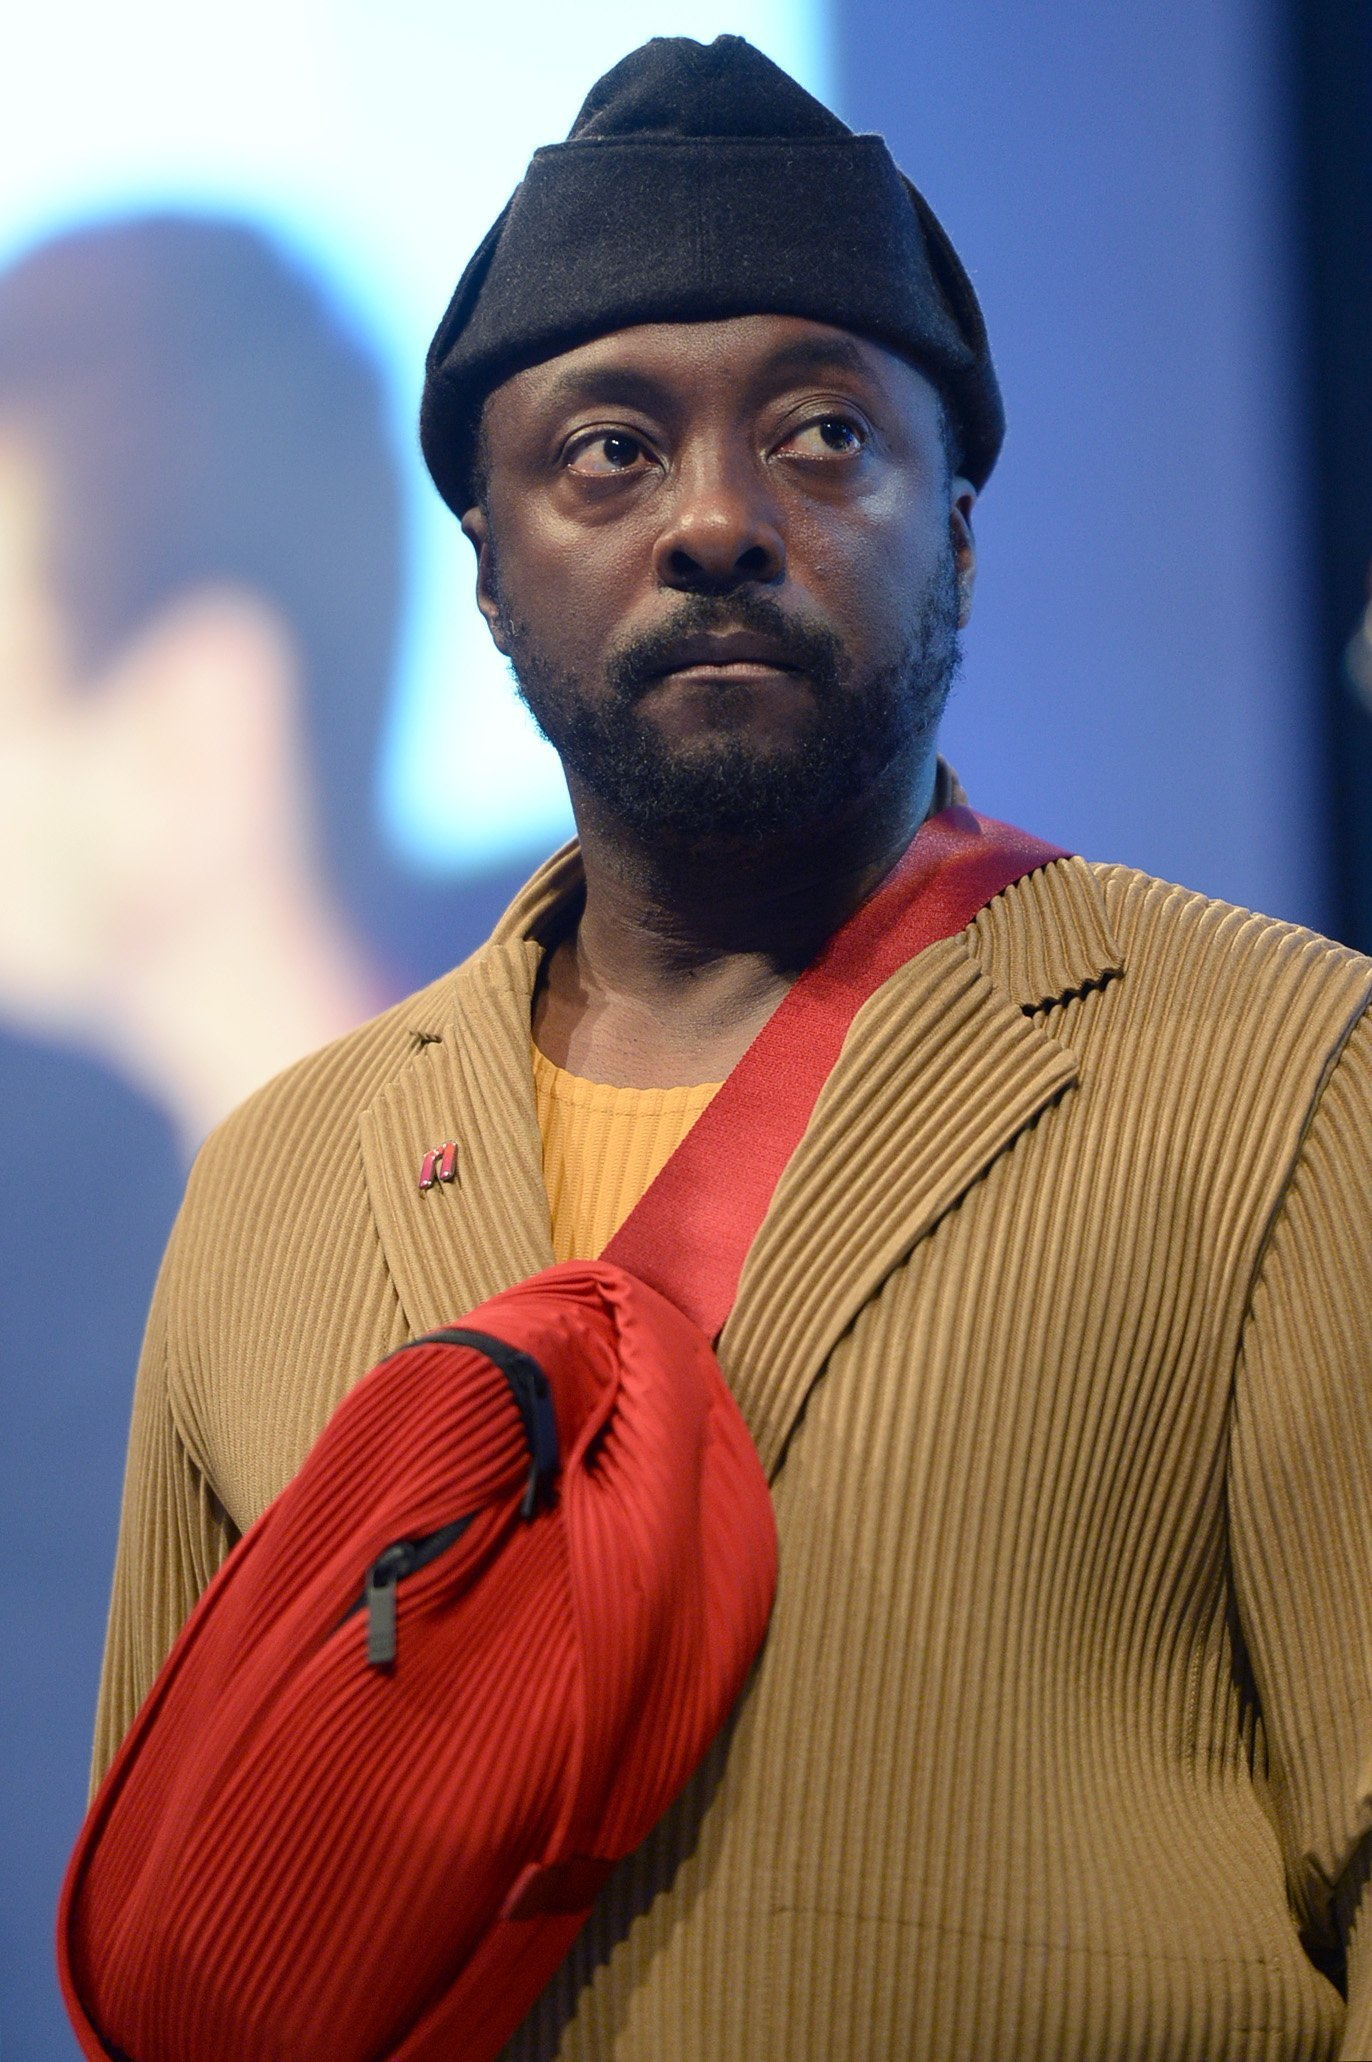 Will.i.am in London in July 2019. | Photo: Getty Images